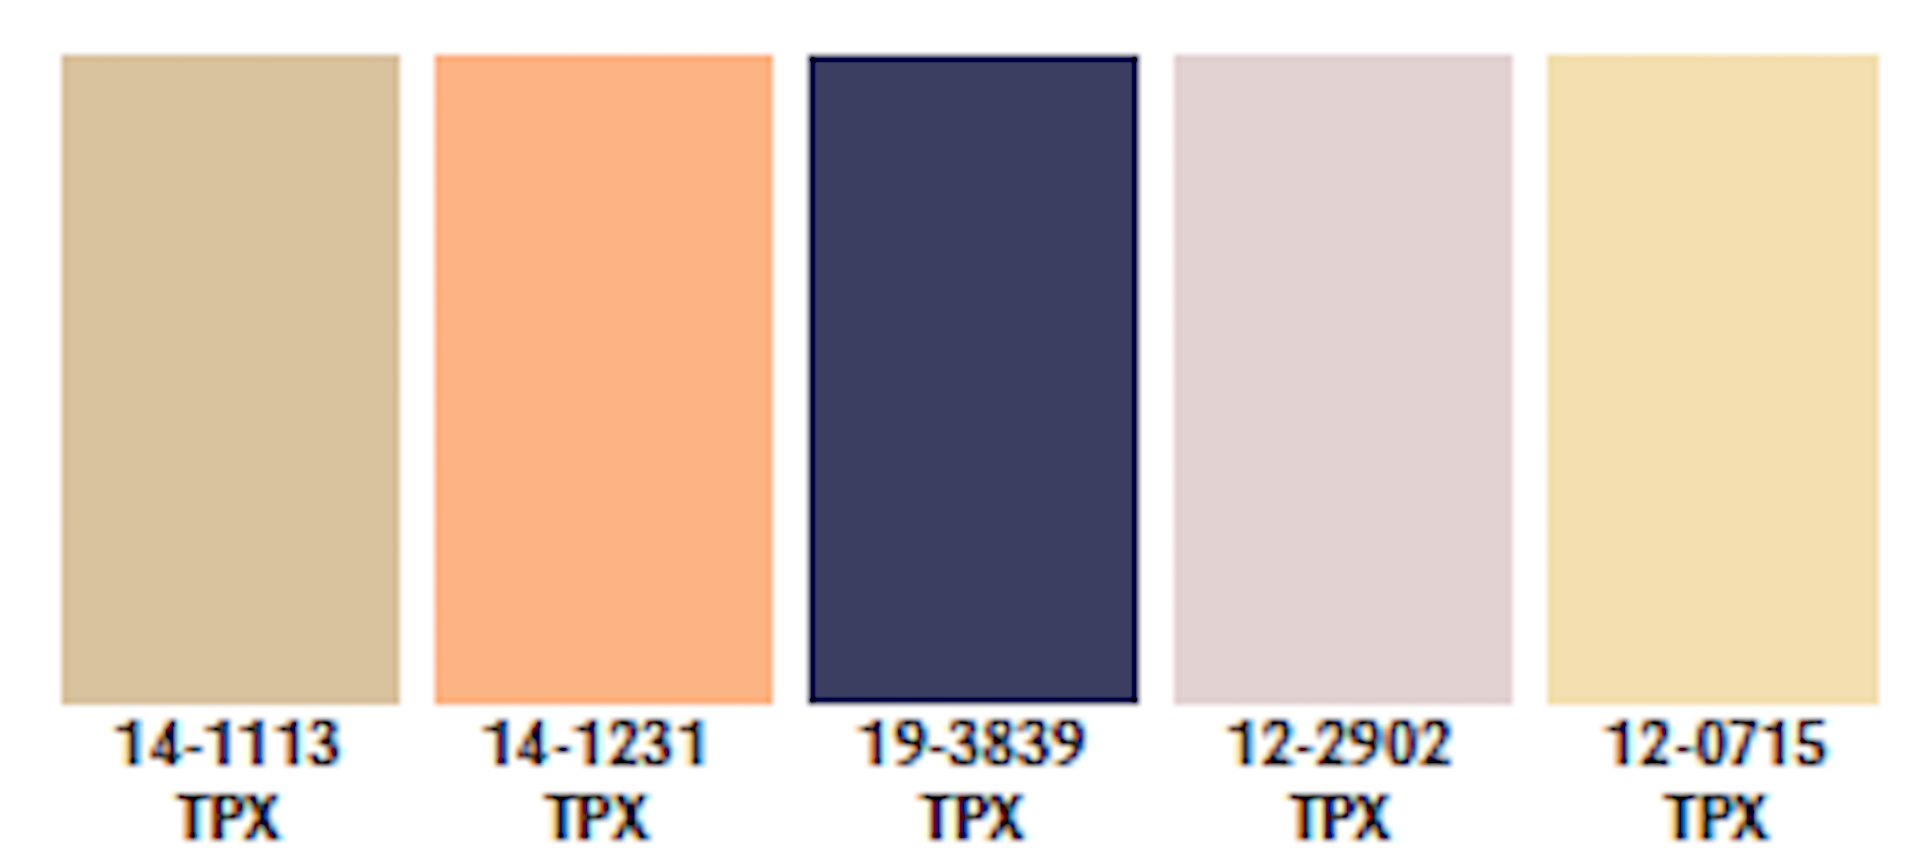 color palette spring summer 2021 in 2020 color trends on business office color schemes 2021 id=35426